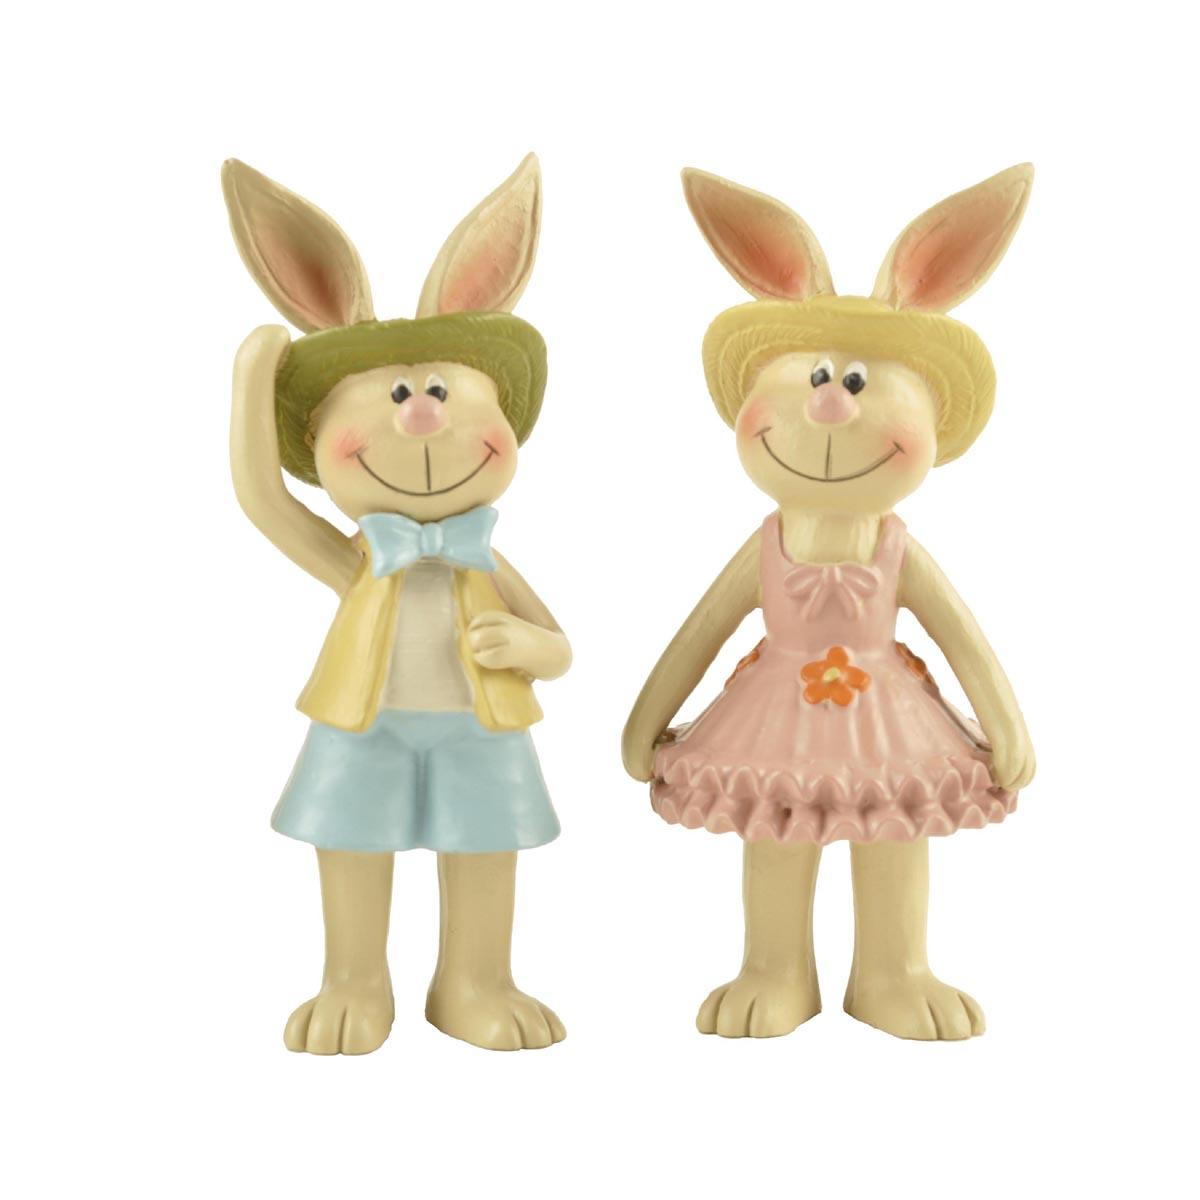 Amazon Best Selling Colorful Resin Rabbit Figurine Easter Bunny sculpture